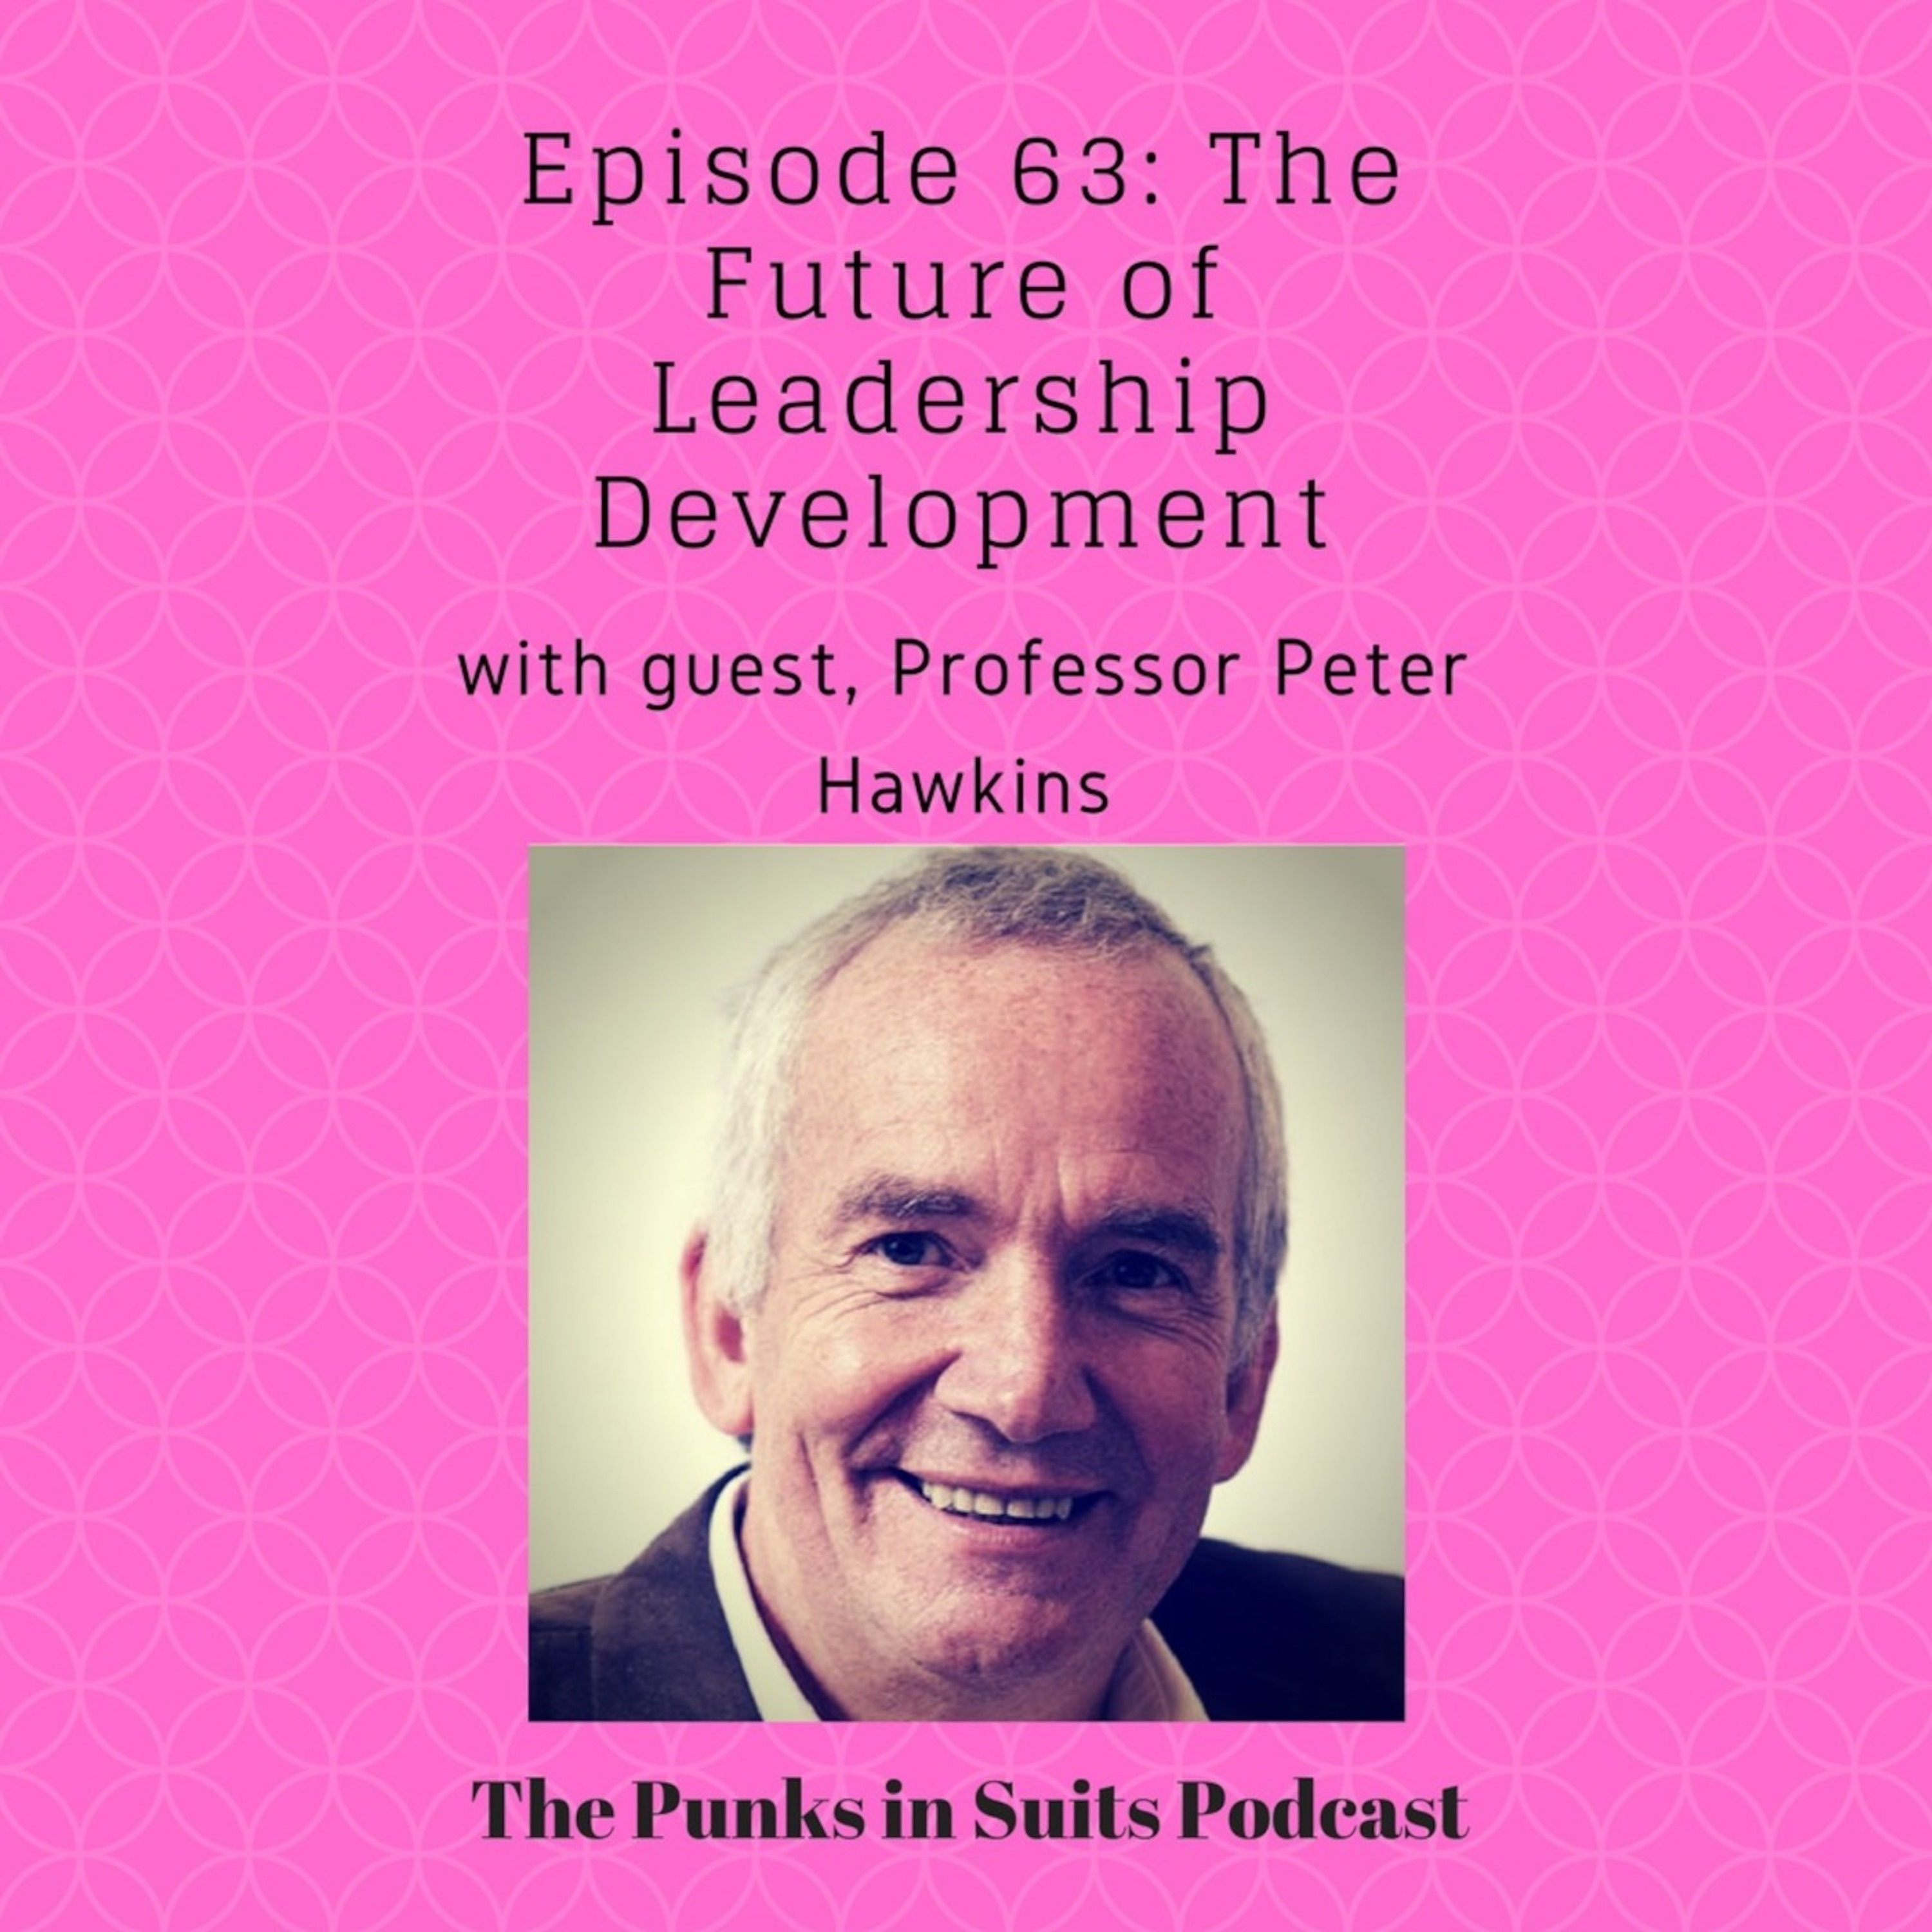 Episode 63: The Future of Leadership Development, with Prof Peter Hawkins